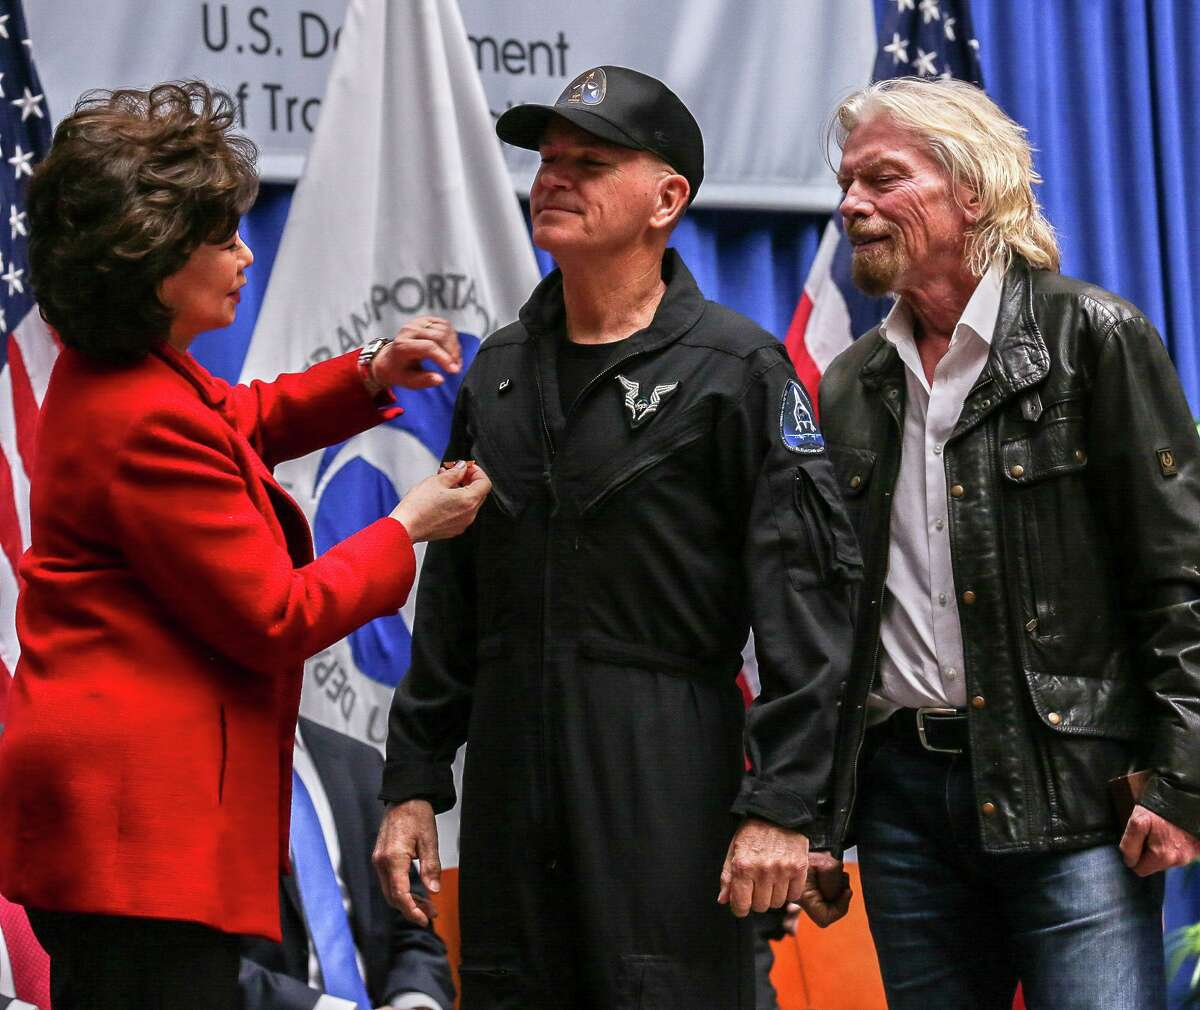 CJ Sturckow, left, receives wings from the FAA's Commercial Space Astronaut Wings program.  Sturckow received these wings because he was a pilot on Virgin Galactic's SpaceShipTwo and flew it over 50 miles above the Earth's surface.  To her right is Virgin Galactic founder Richard Branson.